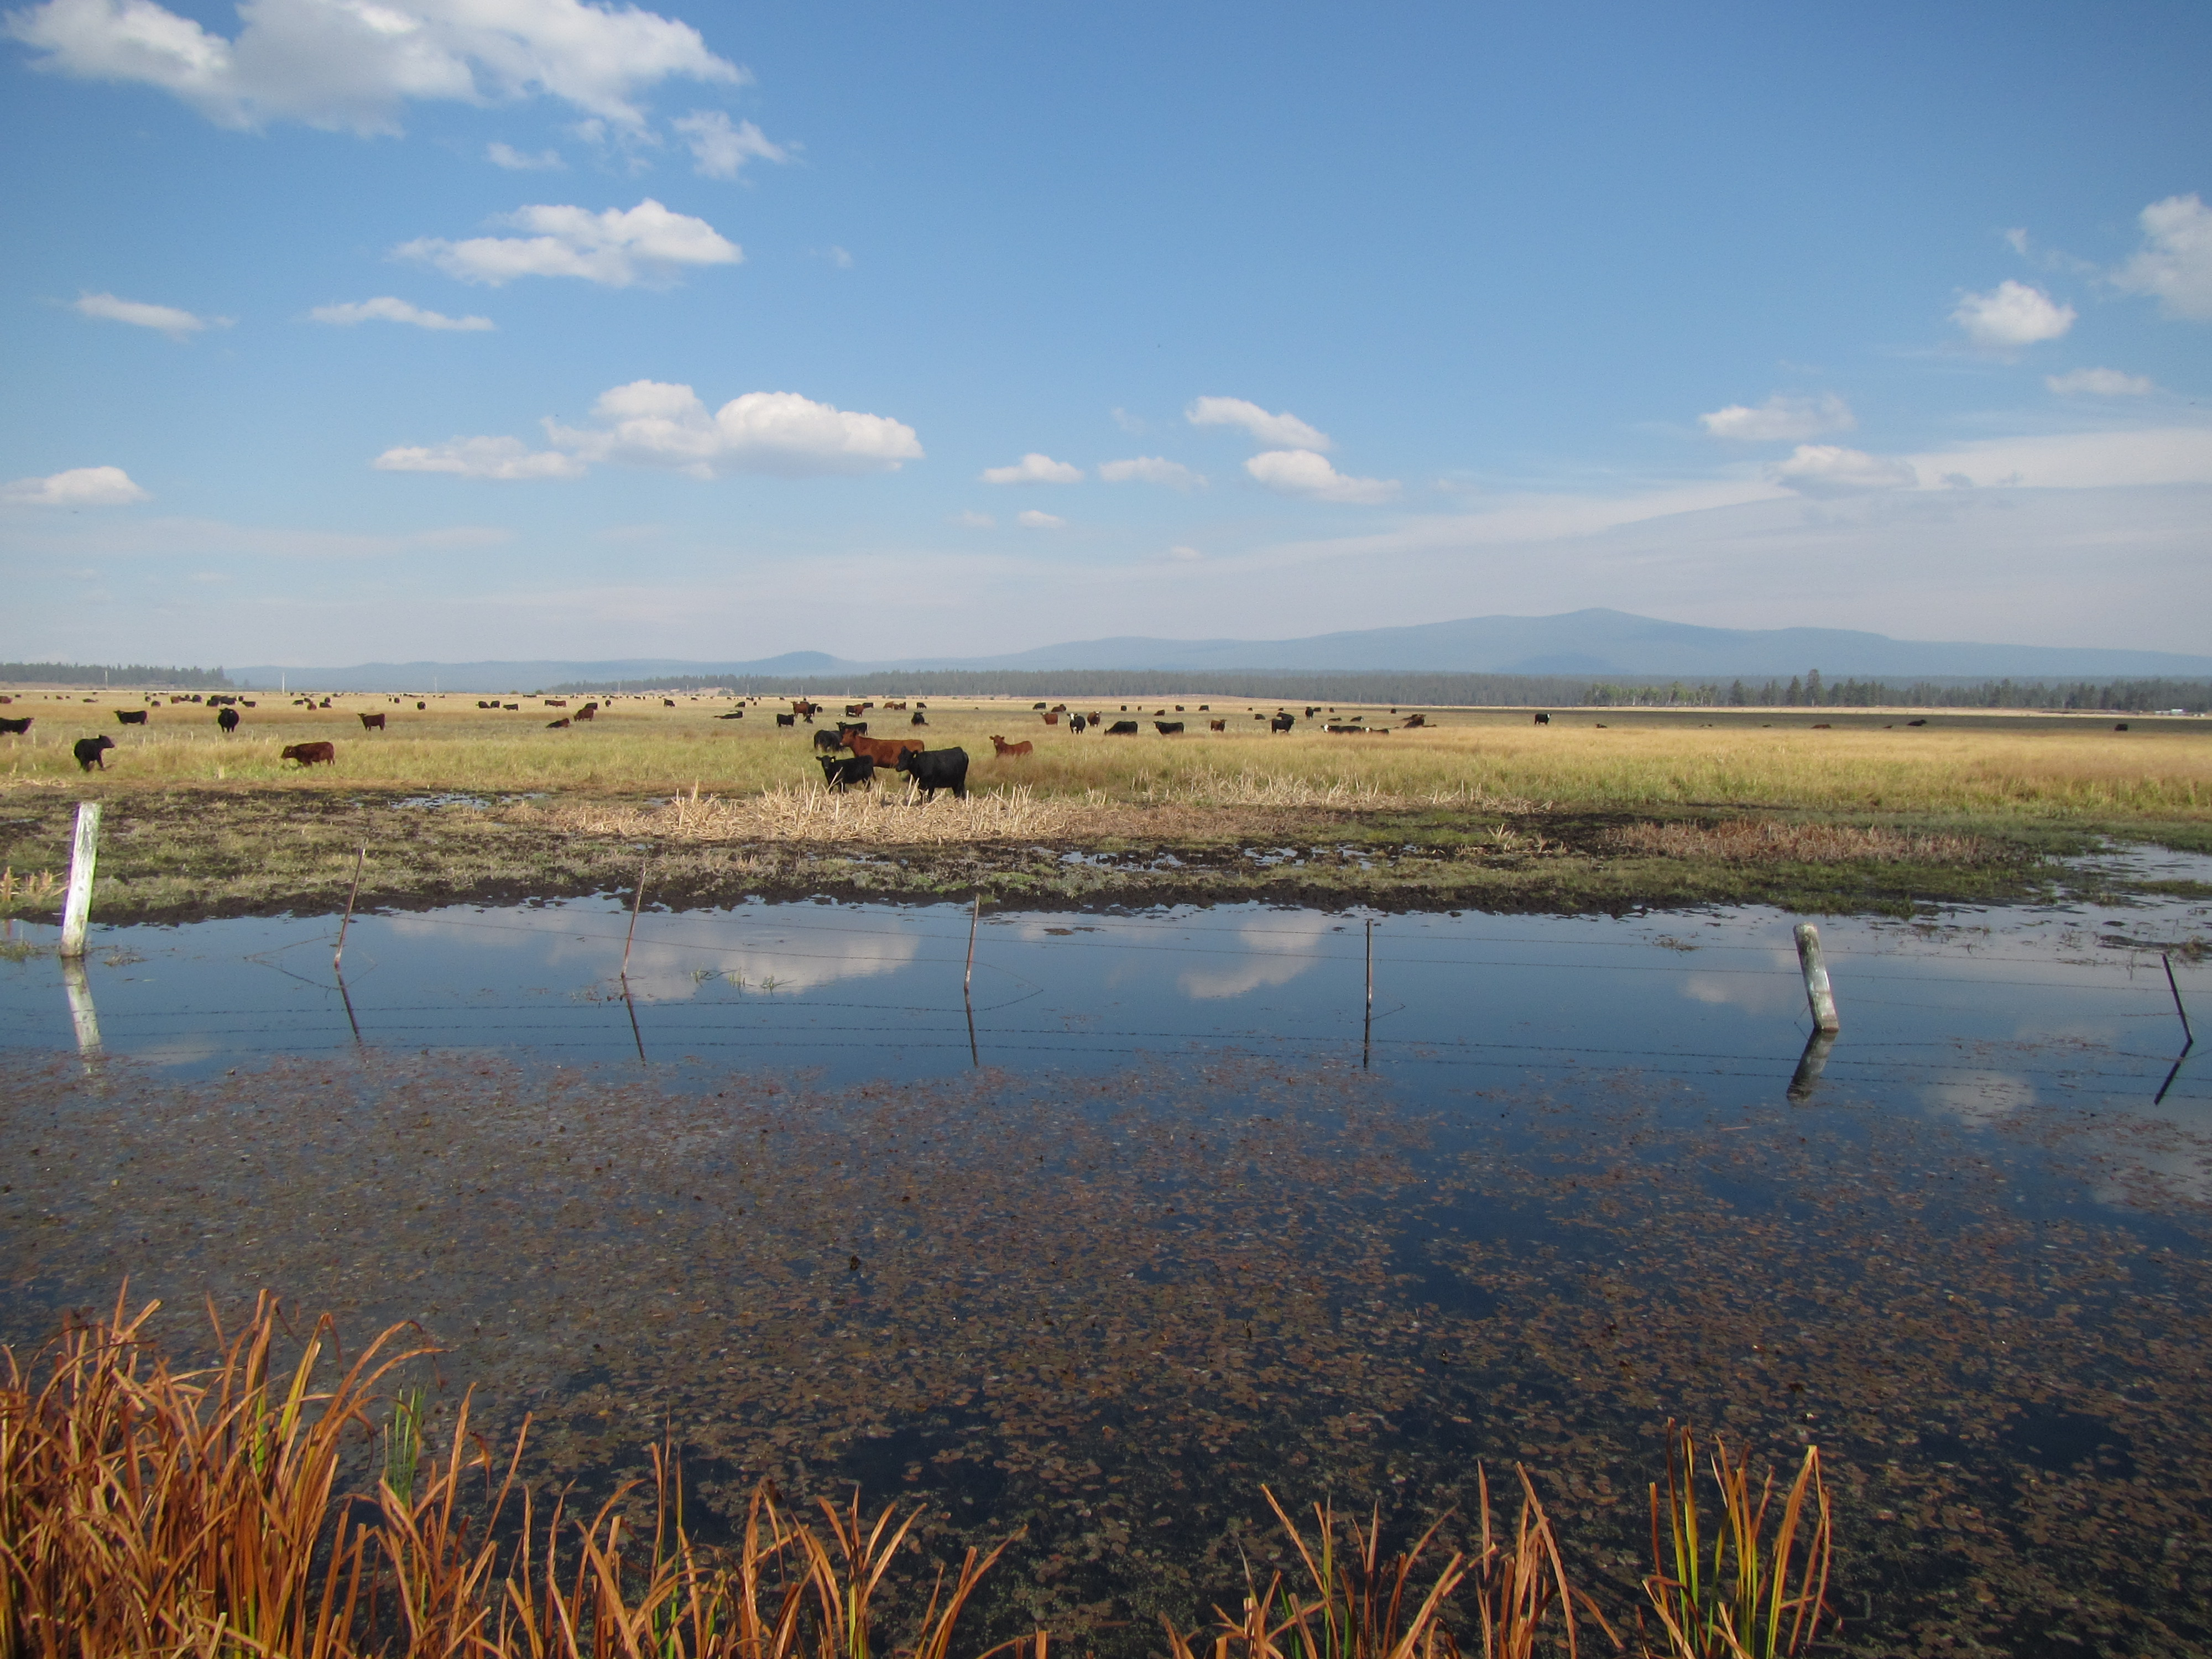 Cattle at Klamath National Wildlife Refuge.<br />Photo by: Brome McCreary